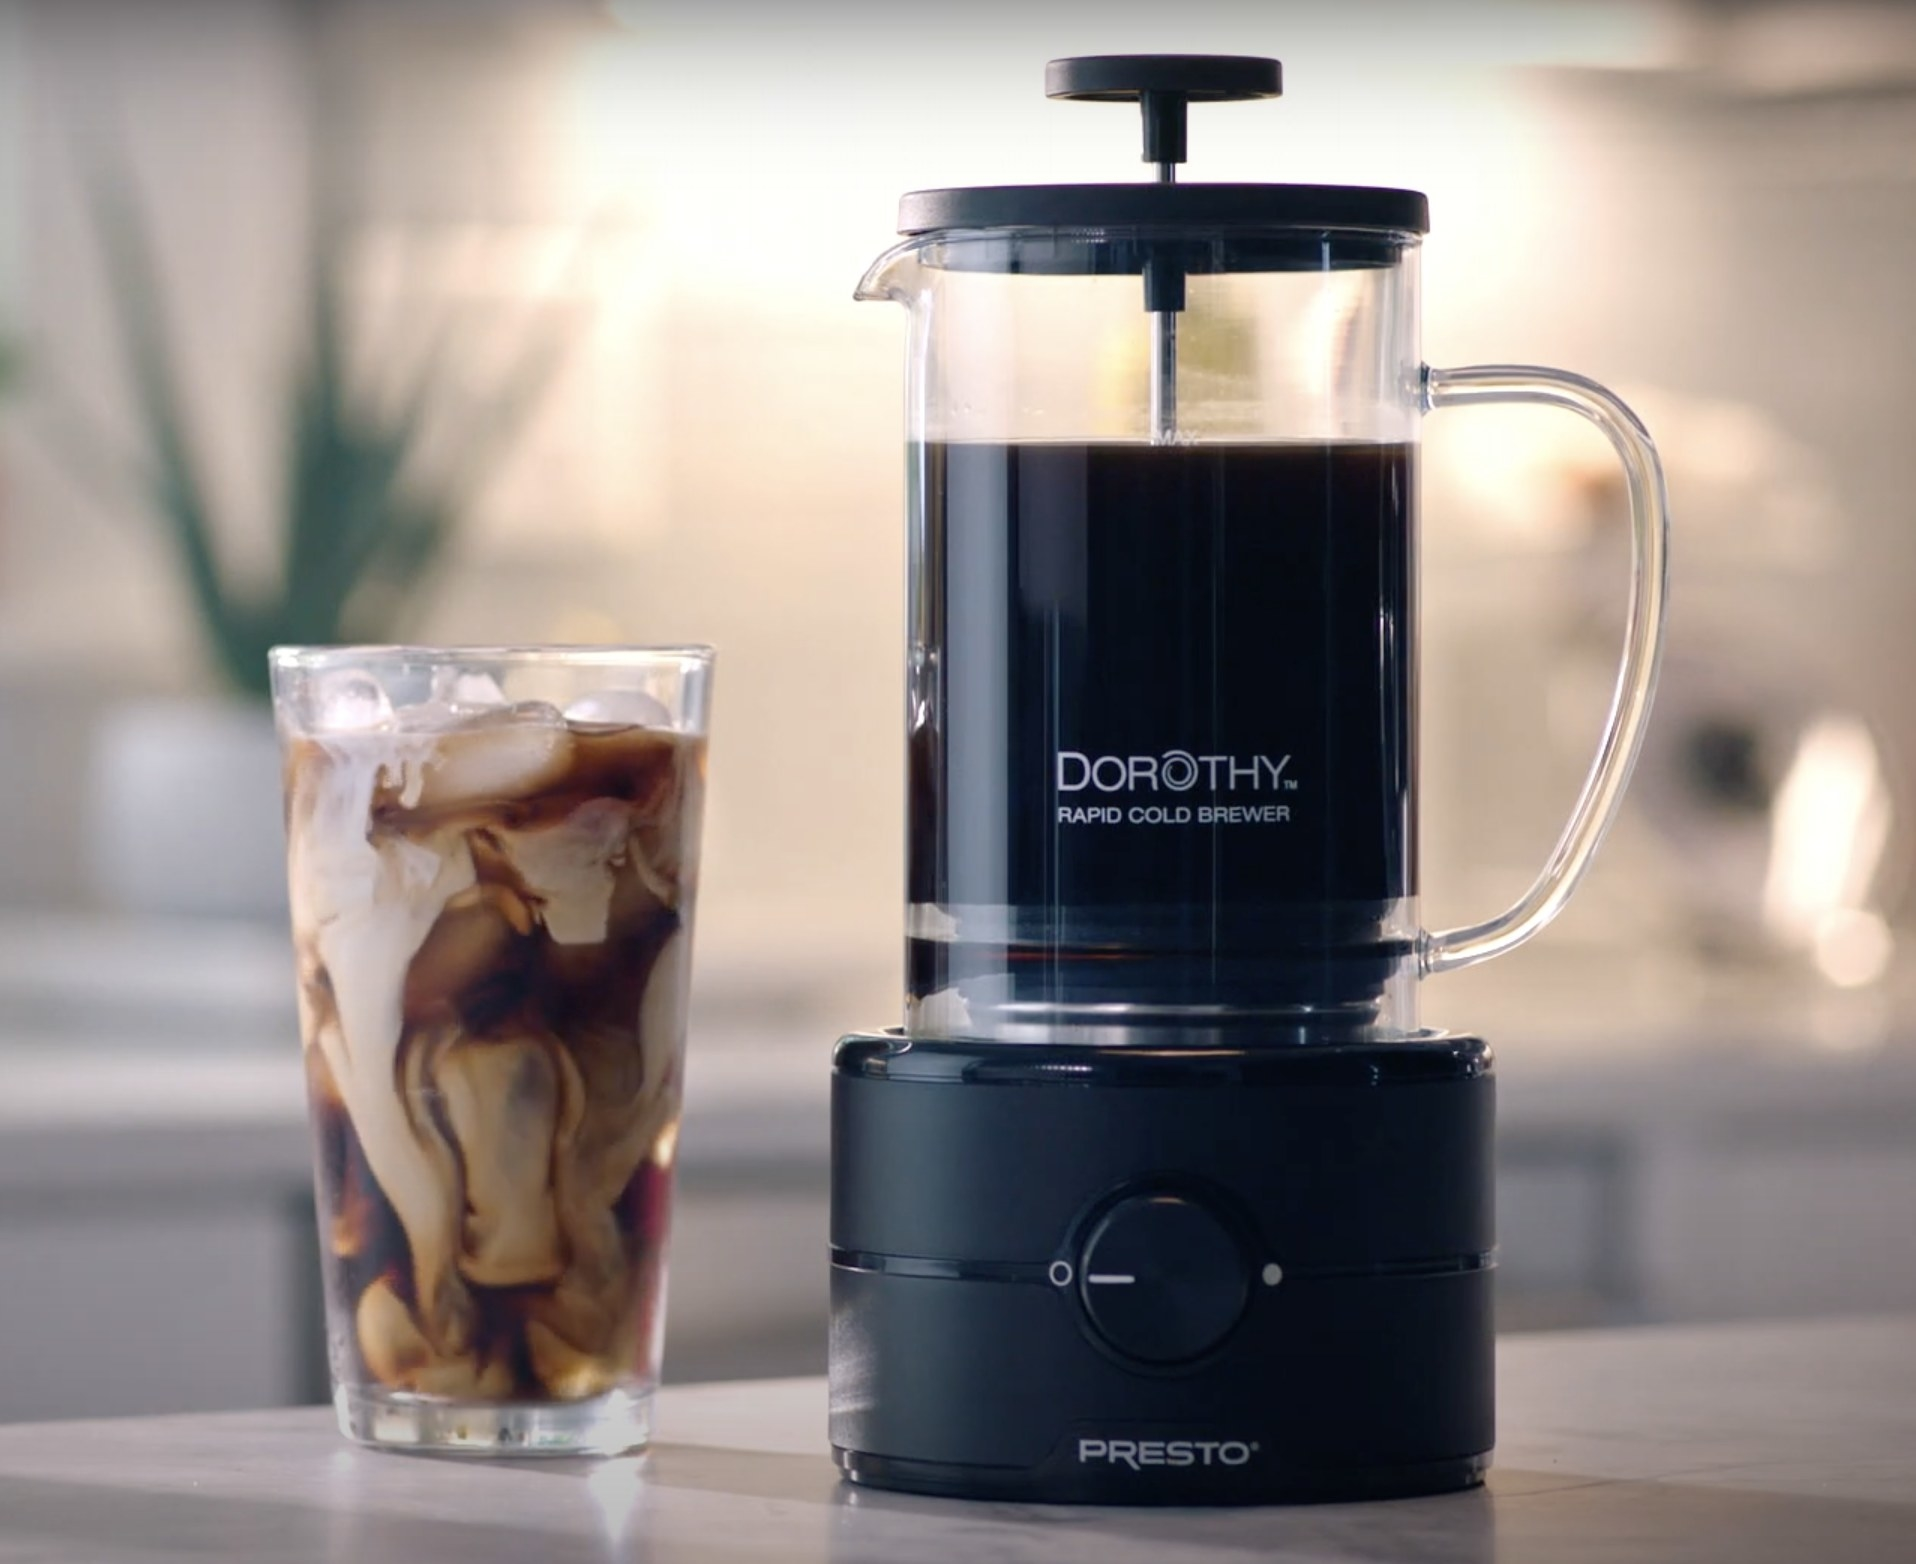 The cold brew maker next to a glass of iced coffee